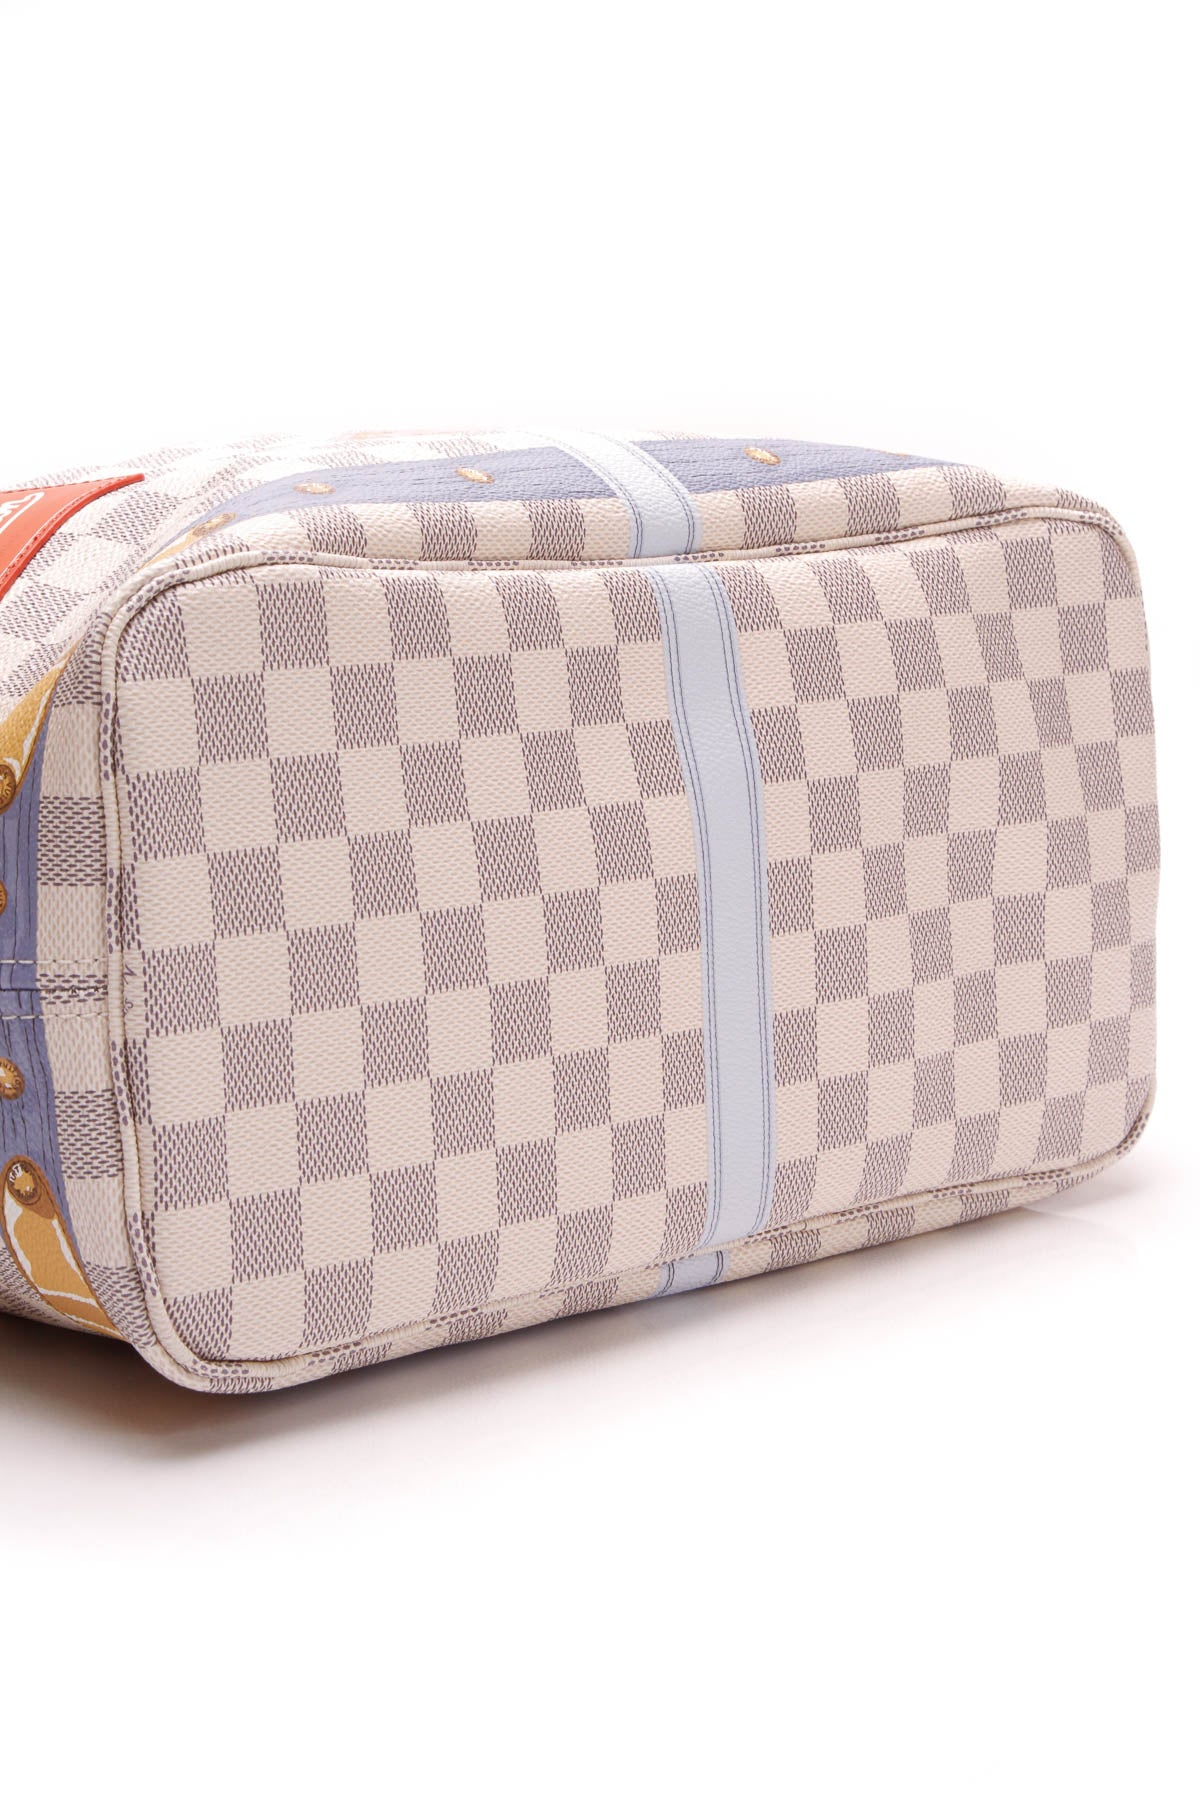 aa0a55c44794 Louis Vuitton Summer Trunks Neo Neverfull MM Bag - Damier Azur ...